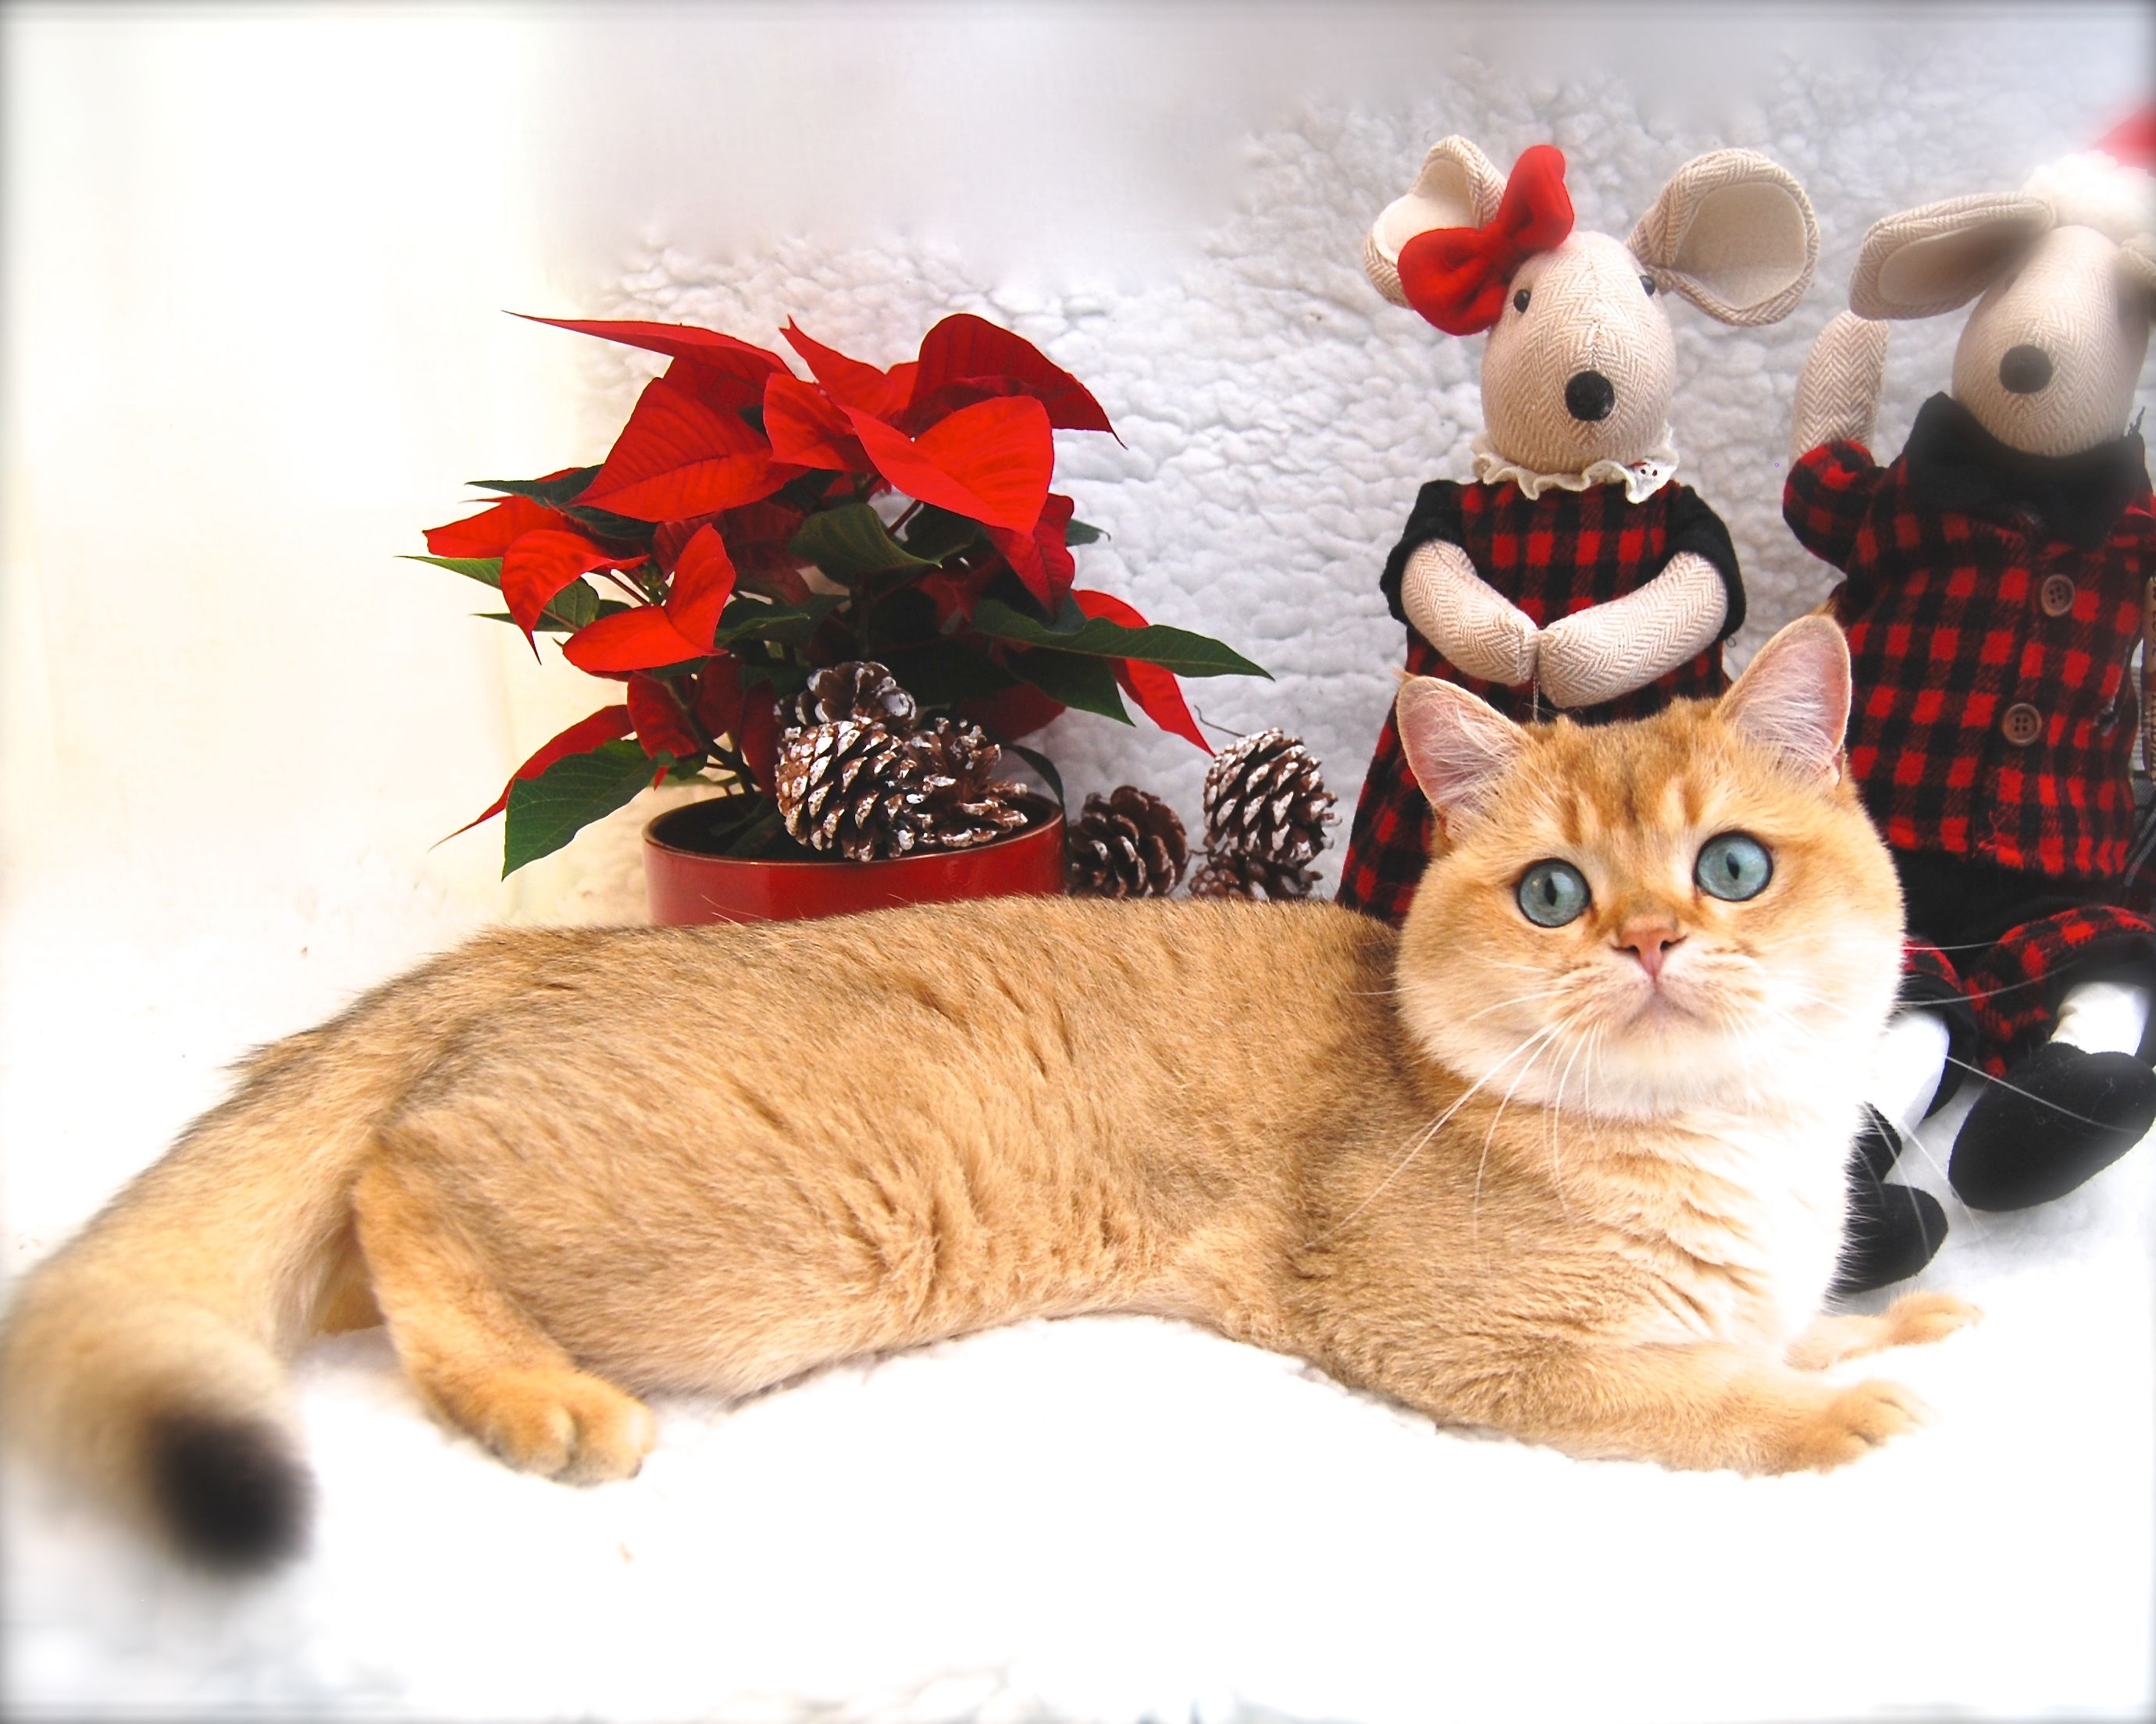 Union Our Black Golden Shaded Ny11 British Shorthair Seasons Greetings British Shorthair British Shorthair Cats Crazy Cats